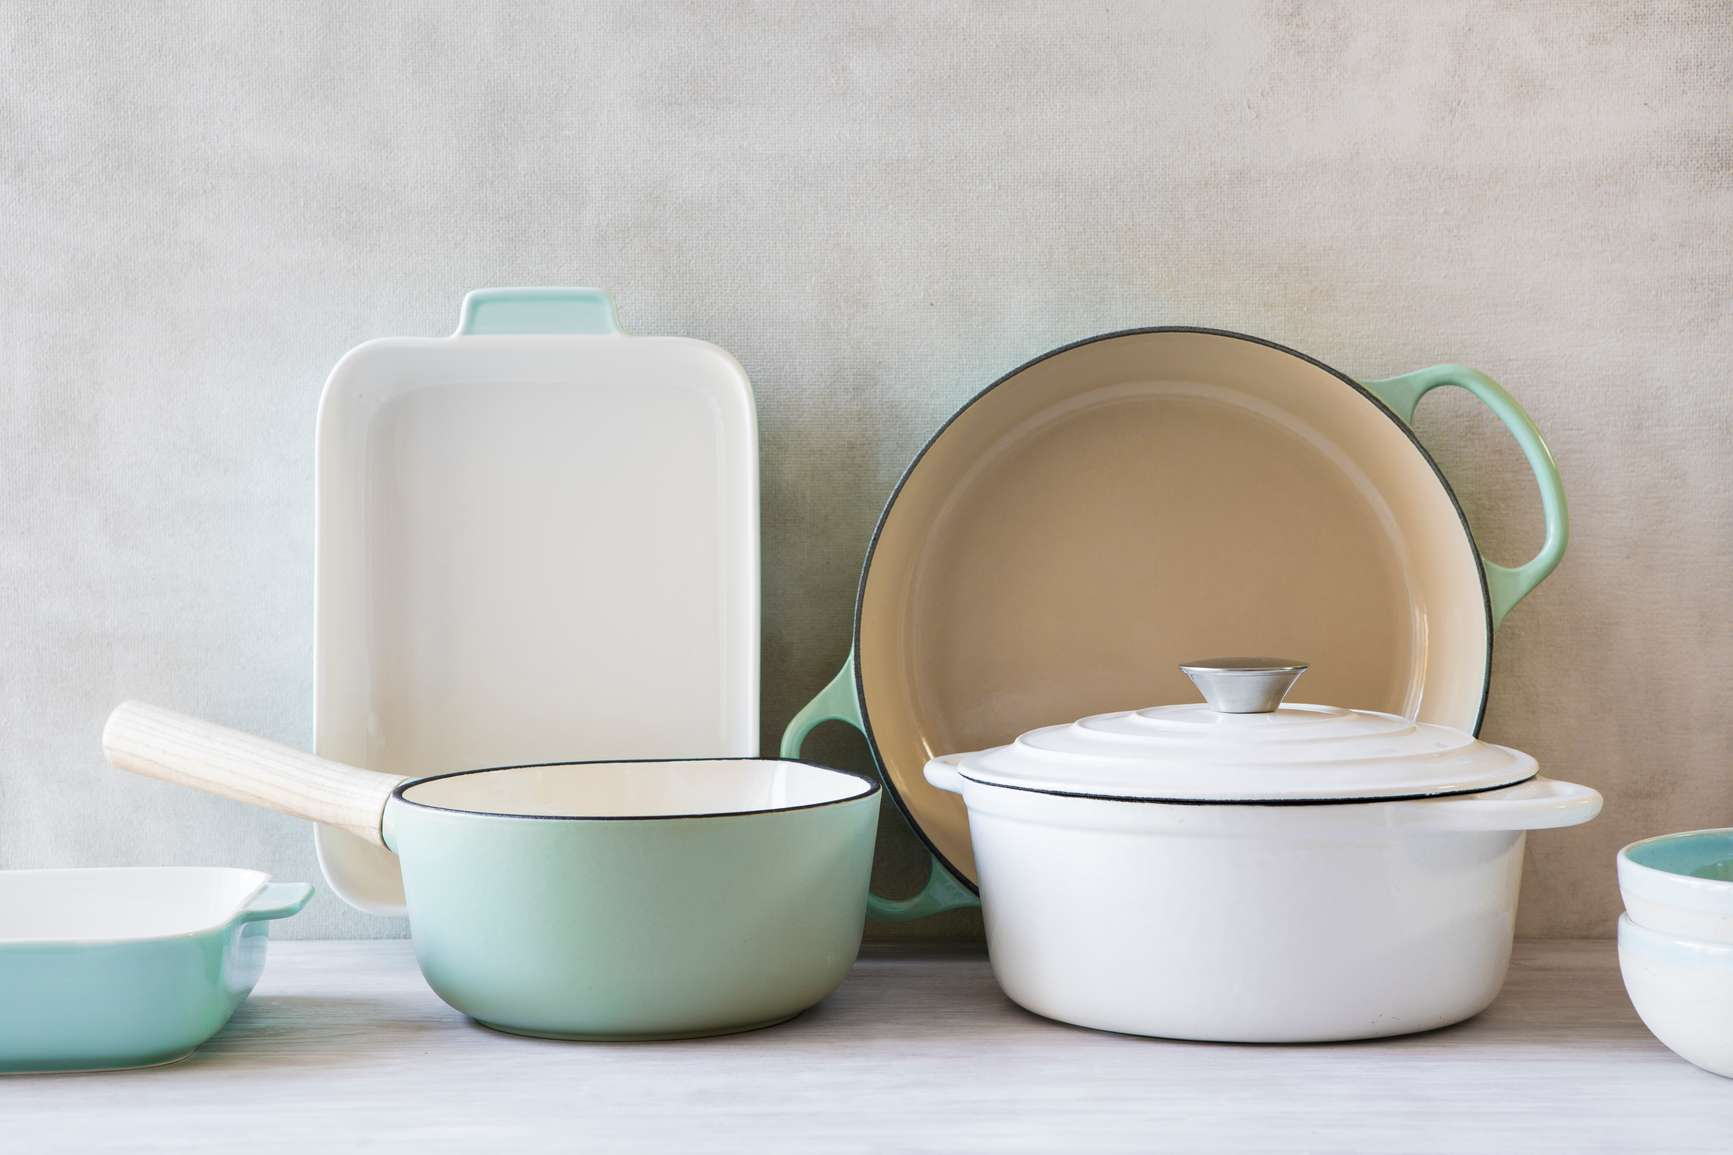 Collection Of Cookware Pots And Pans (NADINE GREEFF)